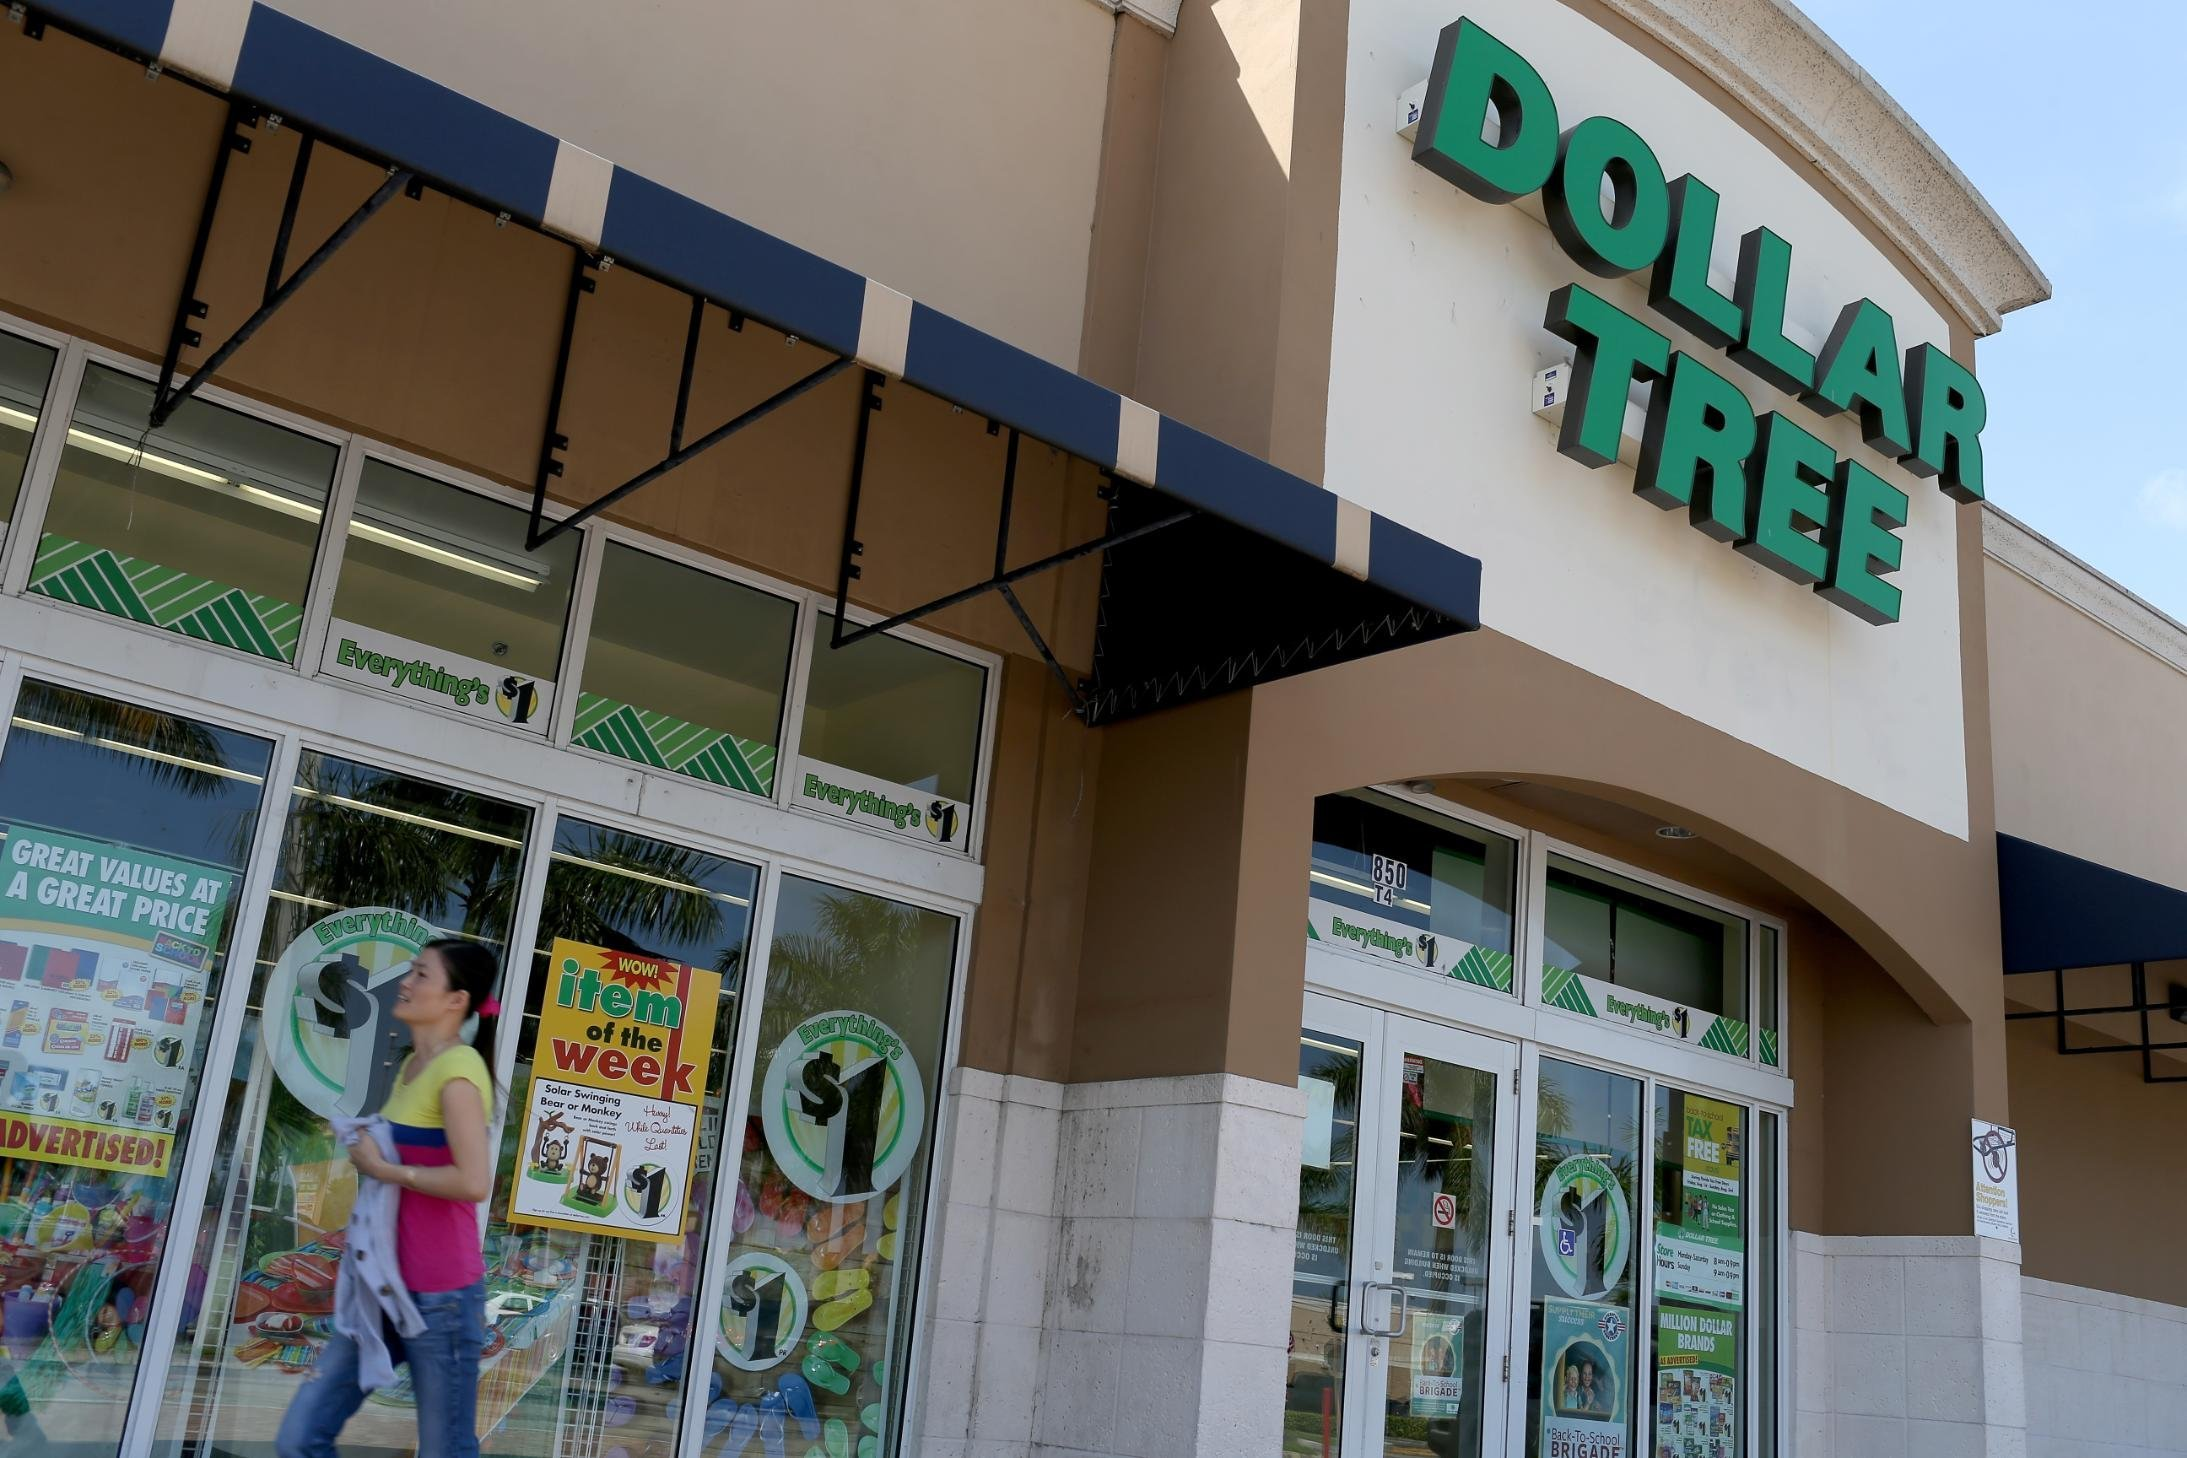 FDA issues warning to Dollar Tree about selling 'potentially unsafe drugs'